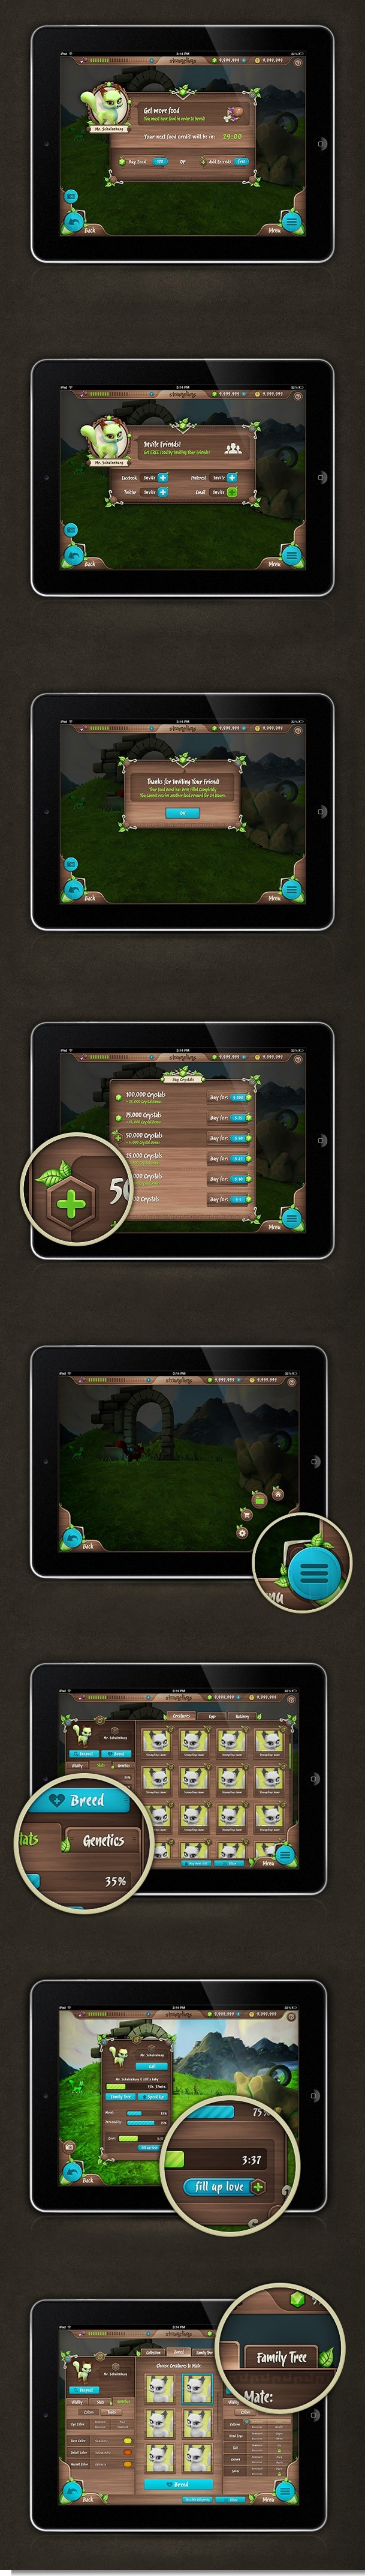 Strangelings Game Design, Interaction Design, UI/UX